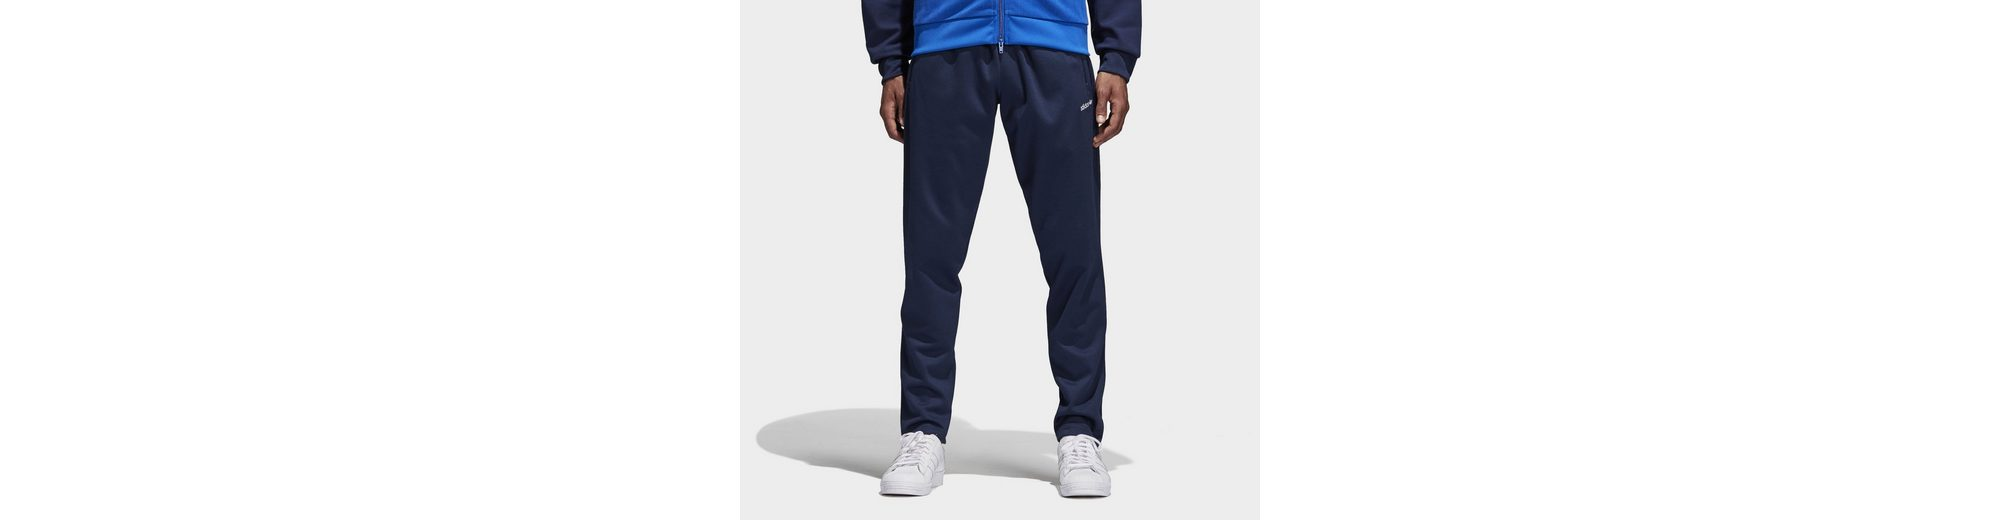 adidas Originals Trainingshose Trainingshose